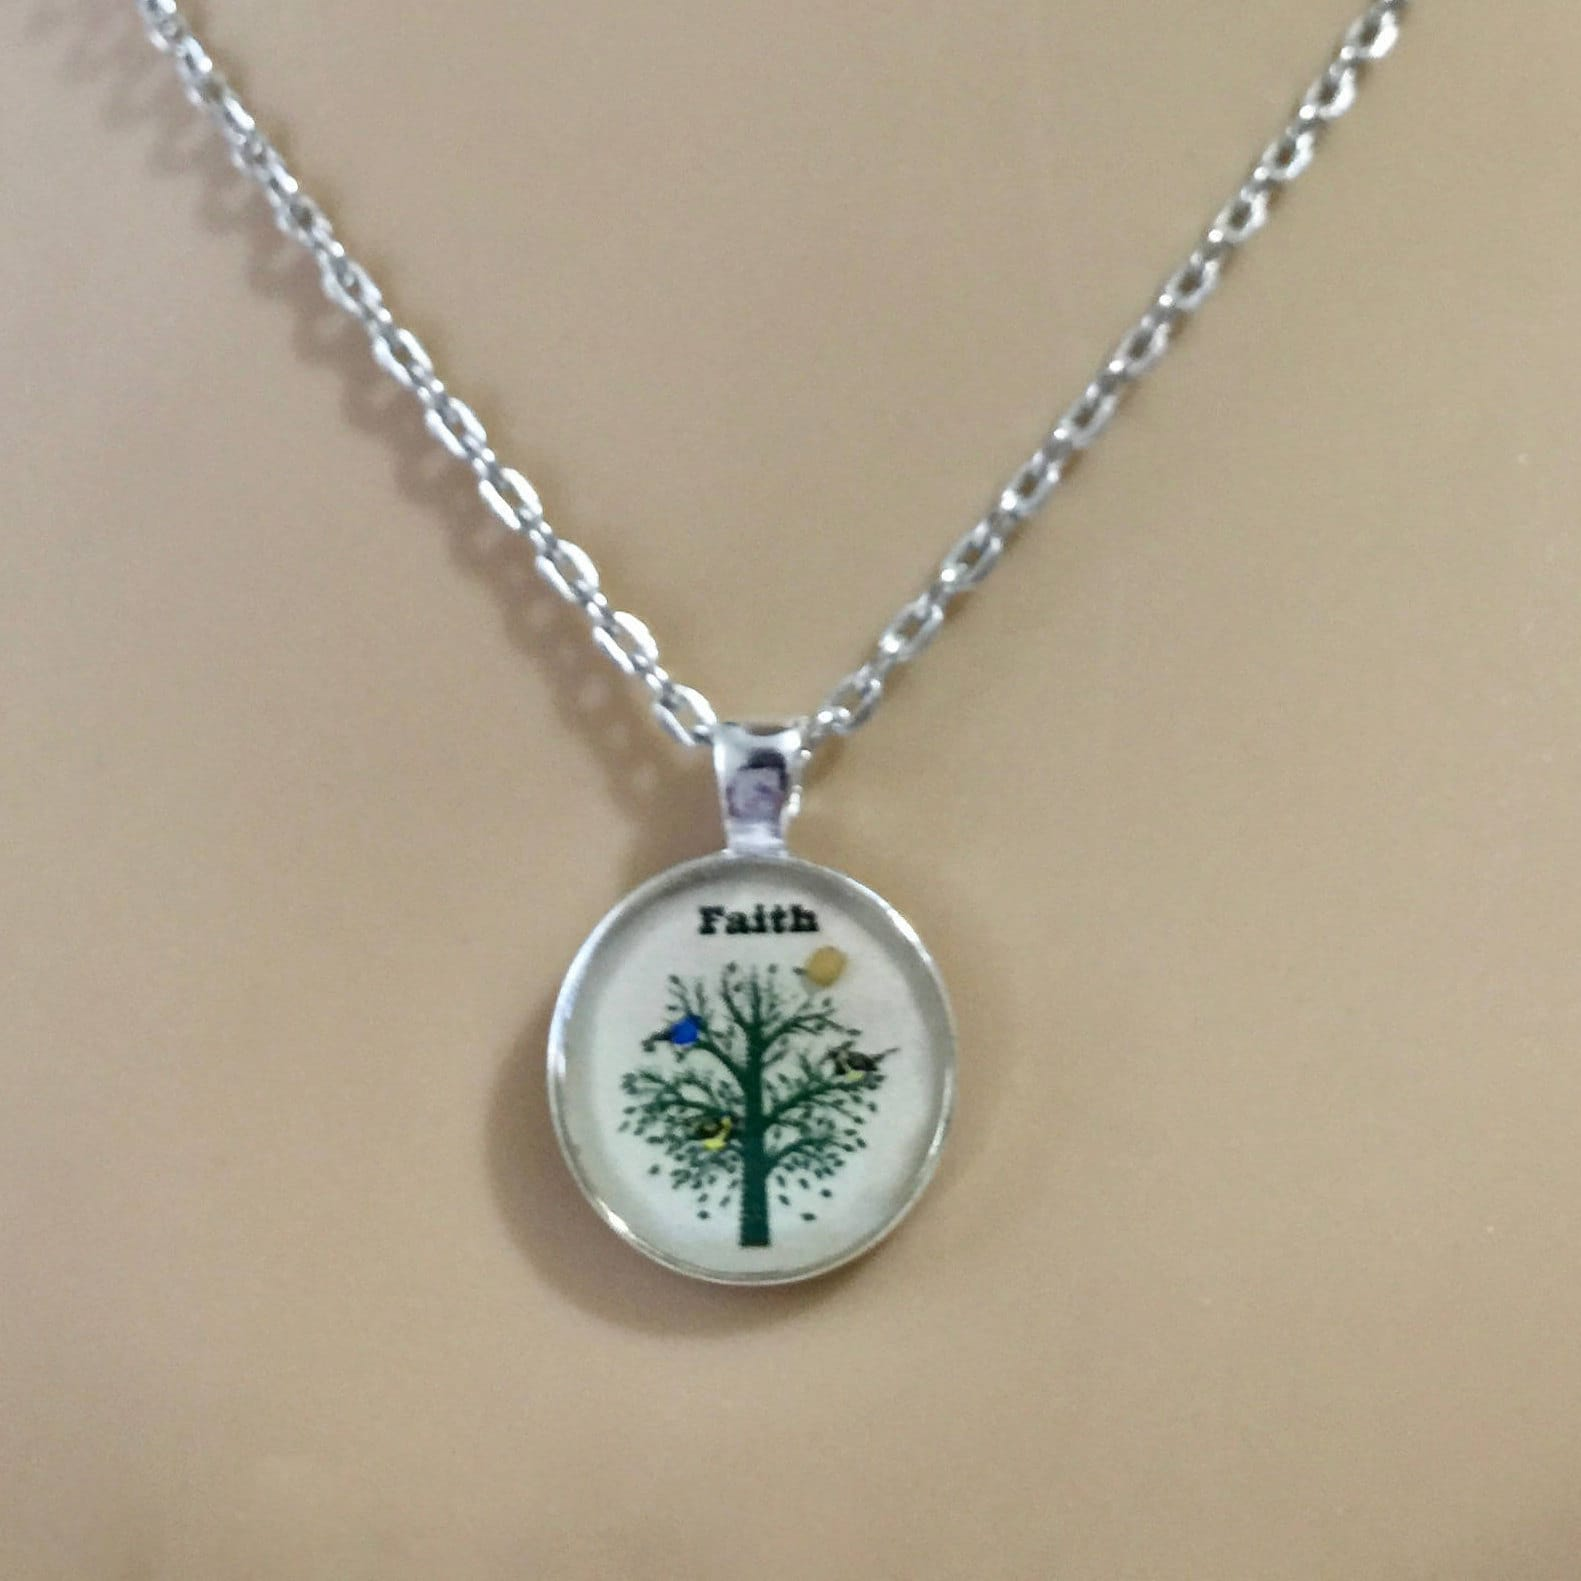 Mustard Seed Necklace With Silver Chain And Real Mustard Seed Cream